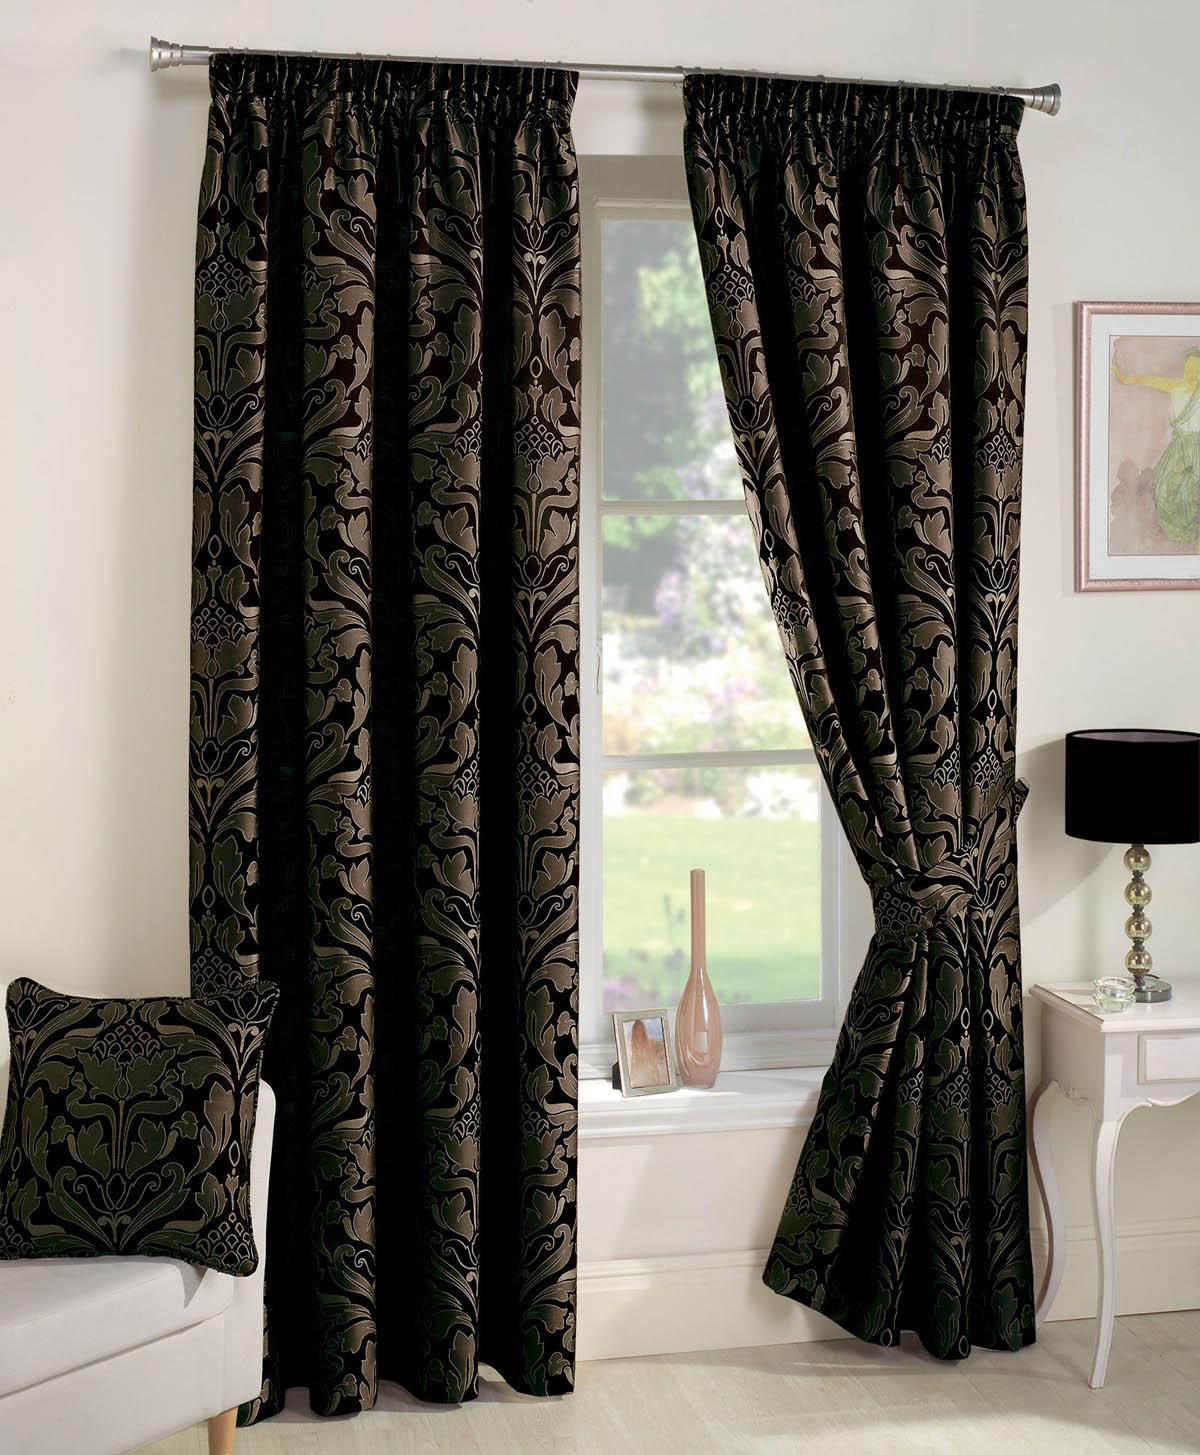 Crompton Ready Made Lined Curtains Black Luxury Headed Curtains